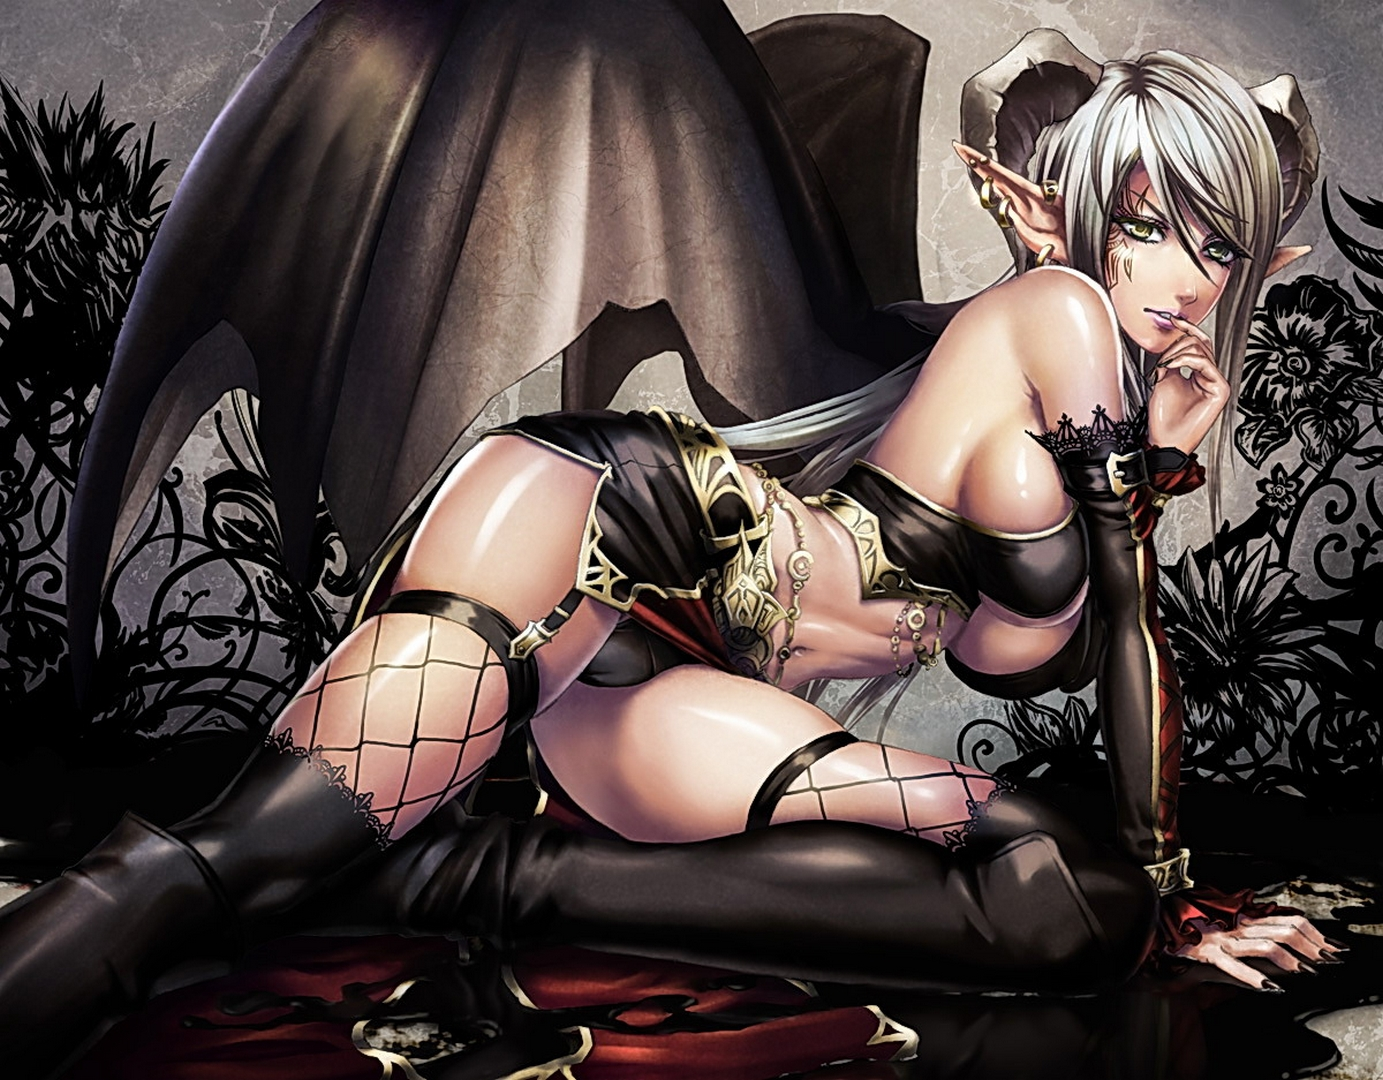 Nude drawings of gothic women hentia movies